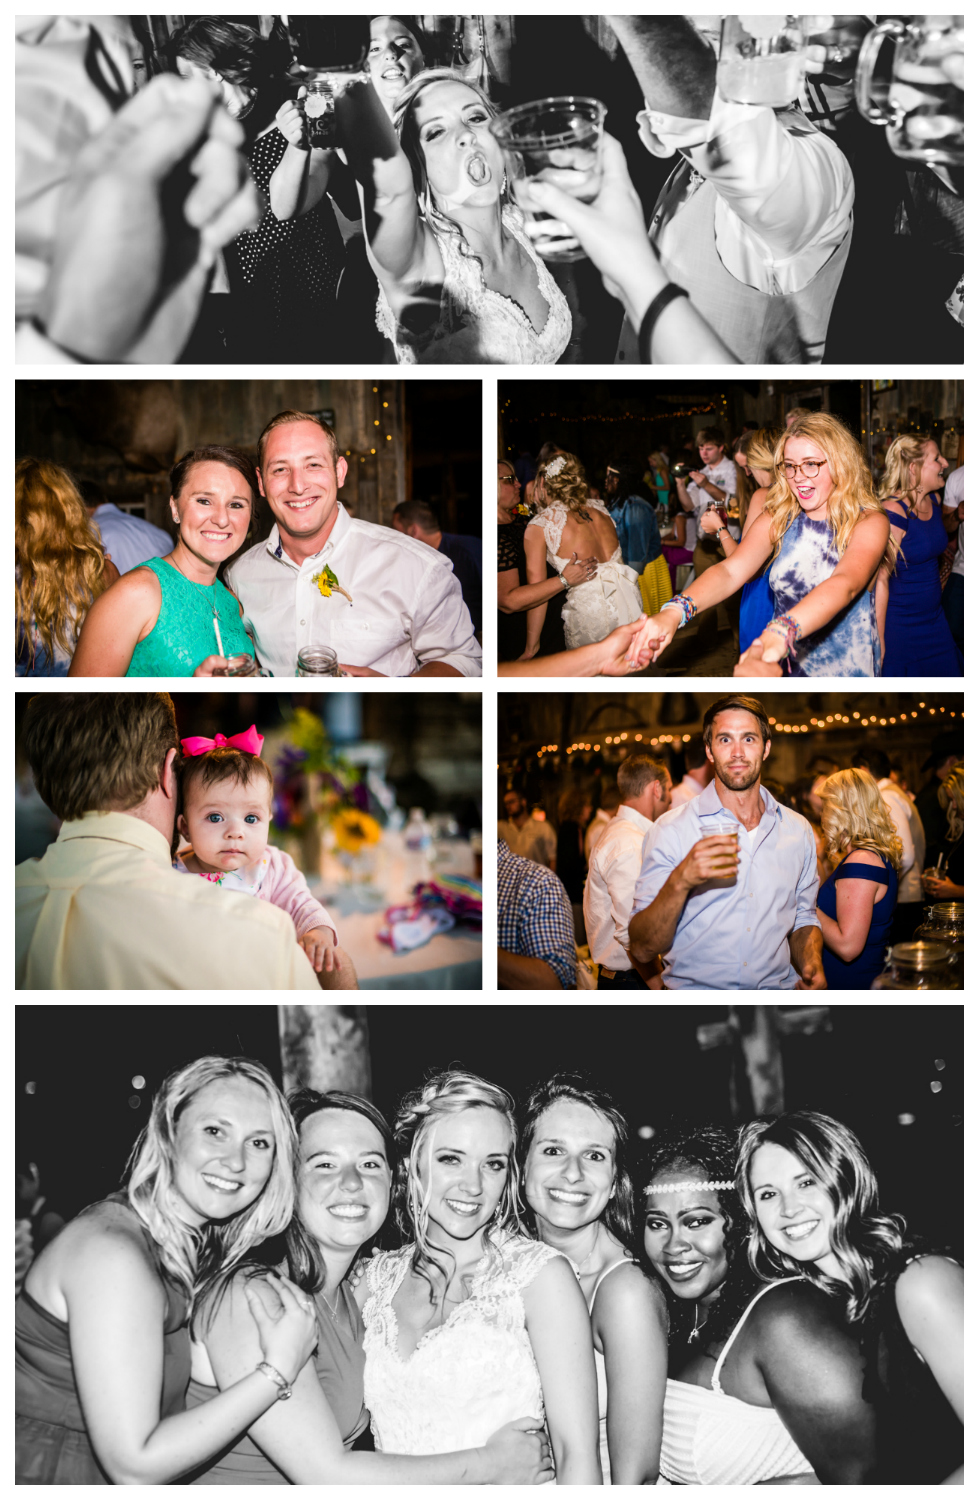 Reception.Wedding at The barn at Evergreen Memorial. Photographed by JMGant Photography.